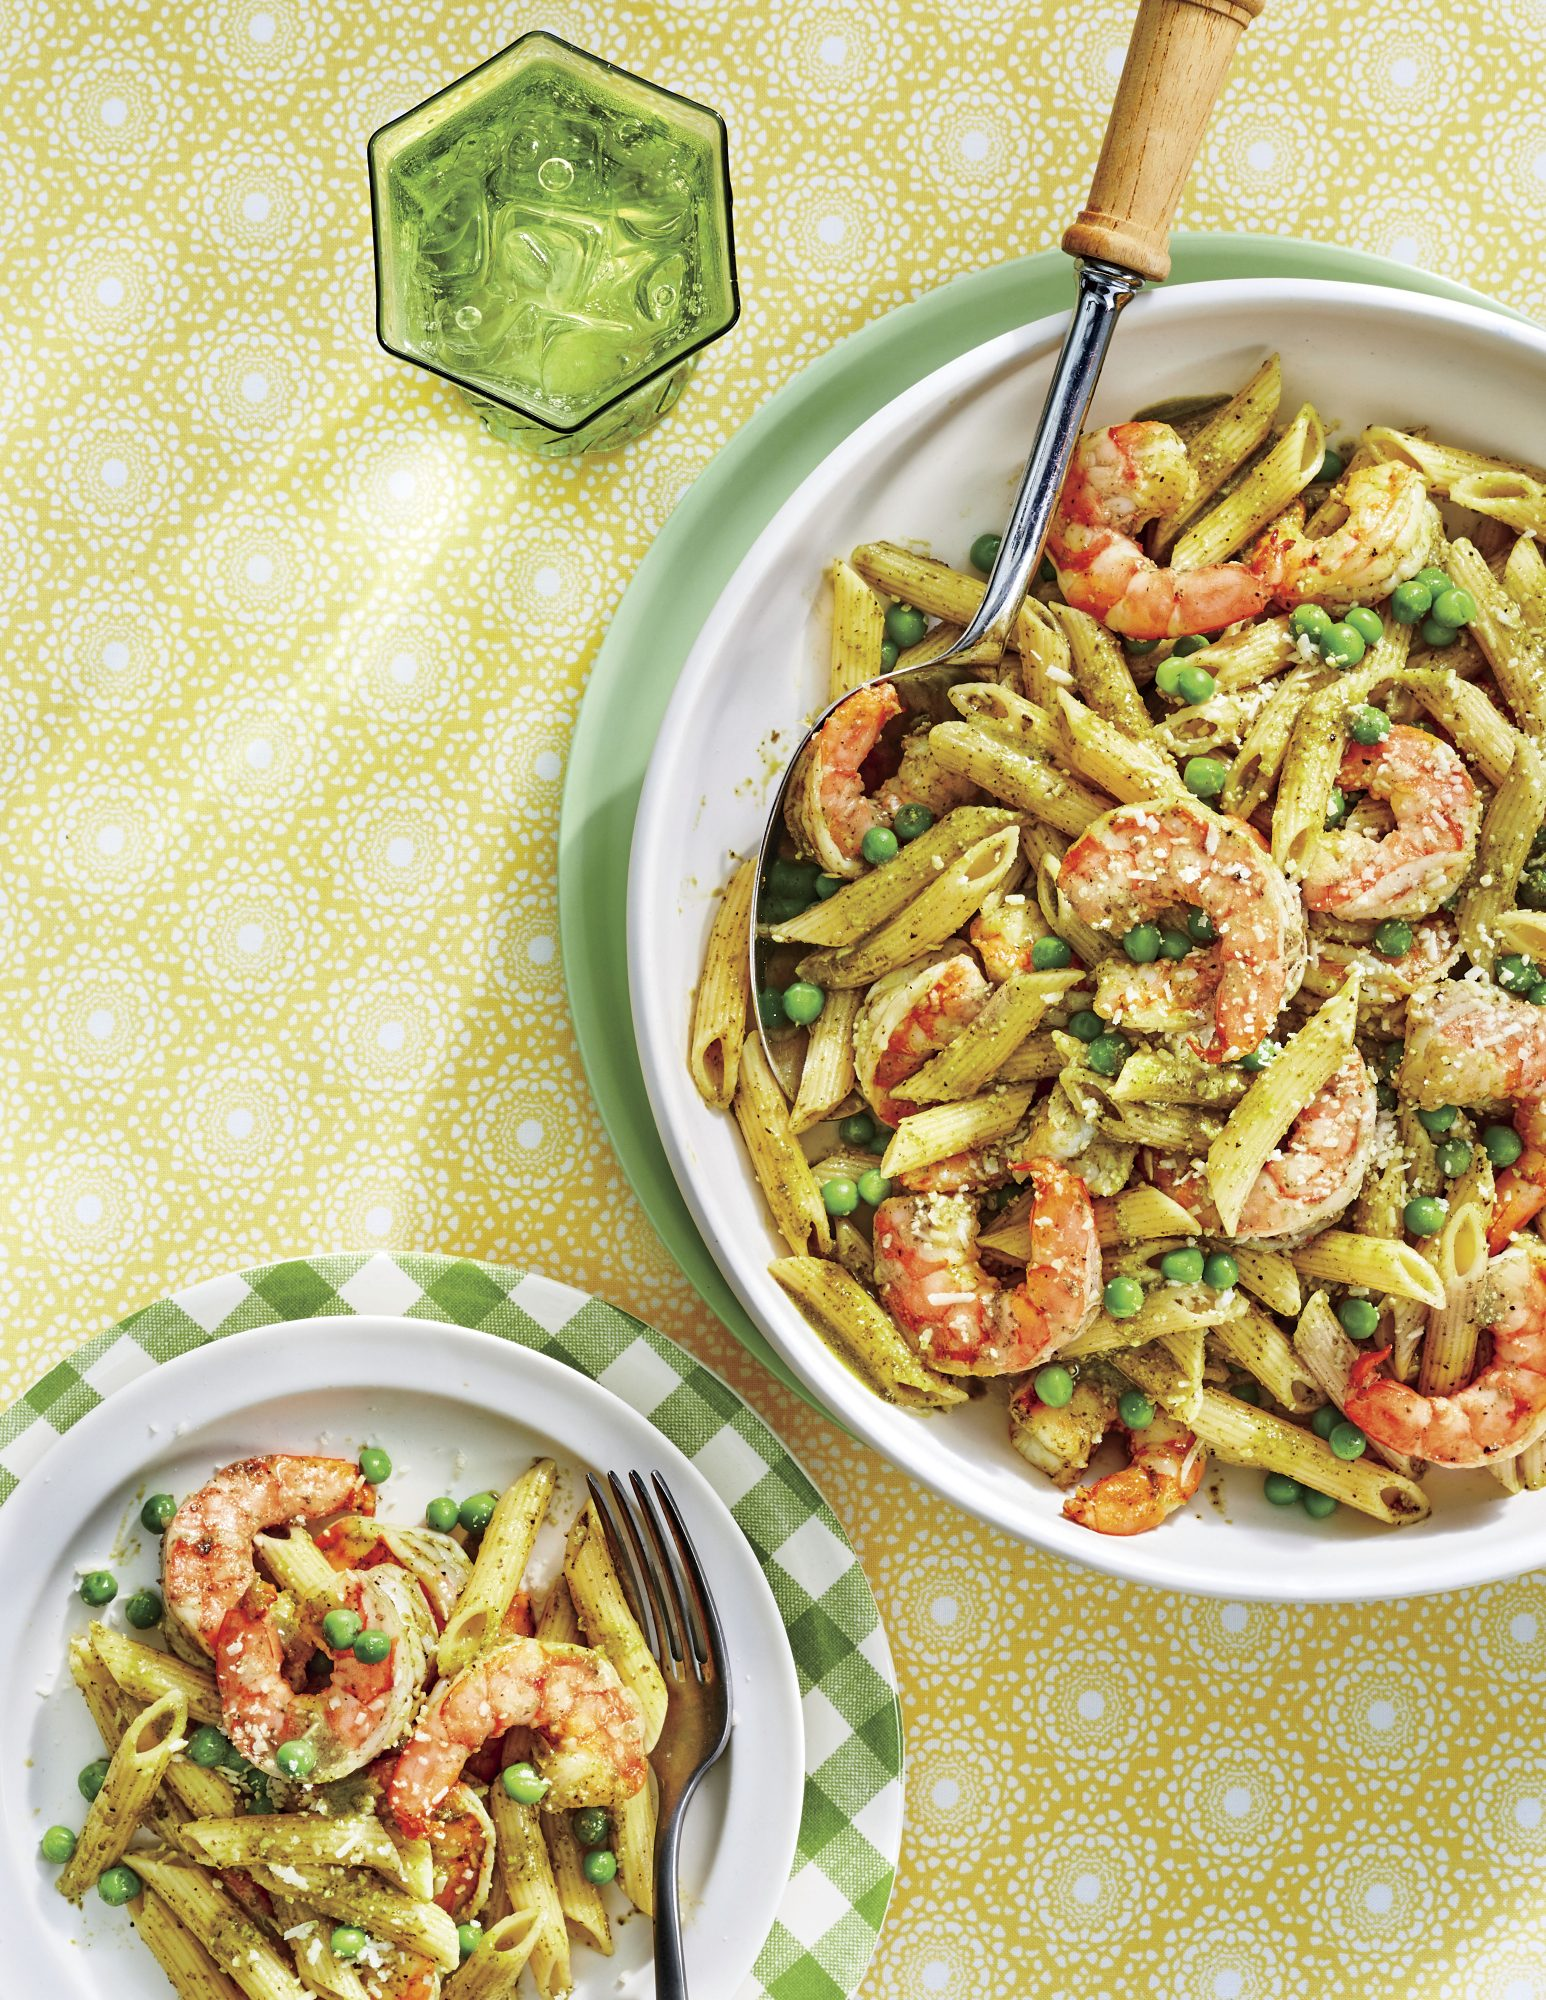 Creamy Pesto-and-Shrimp Penne with Peas